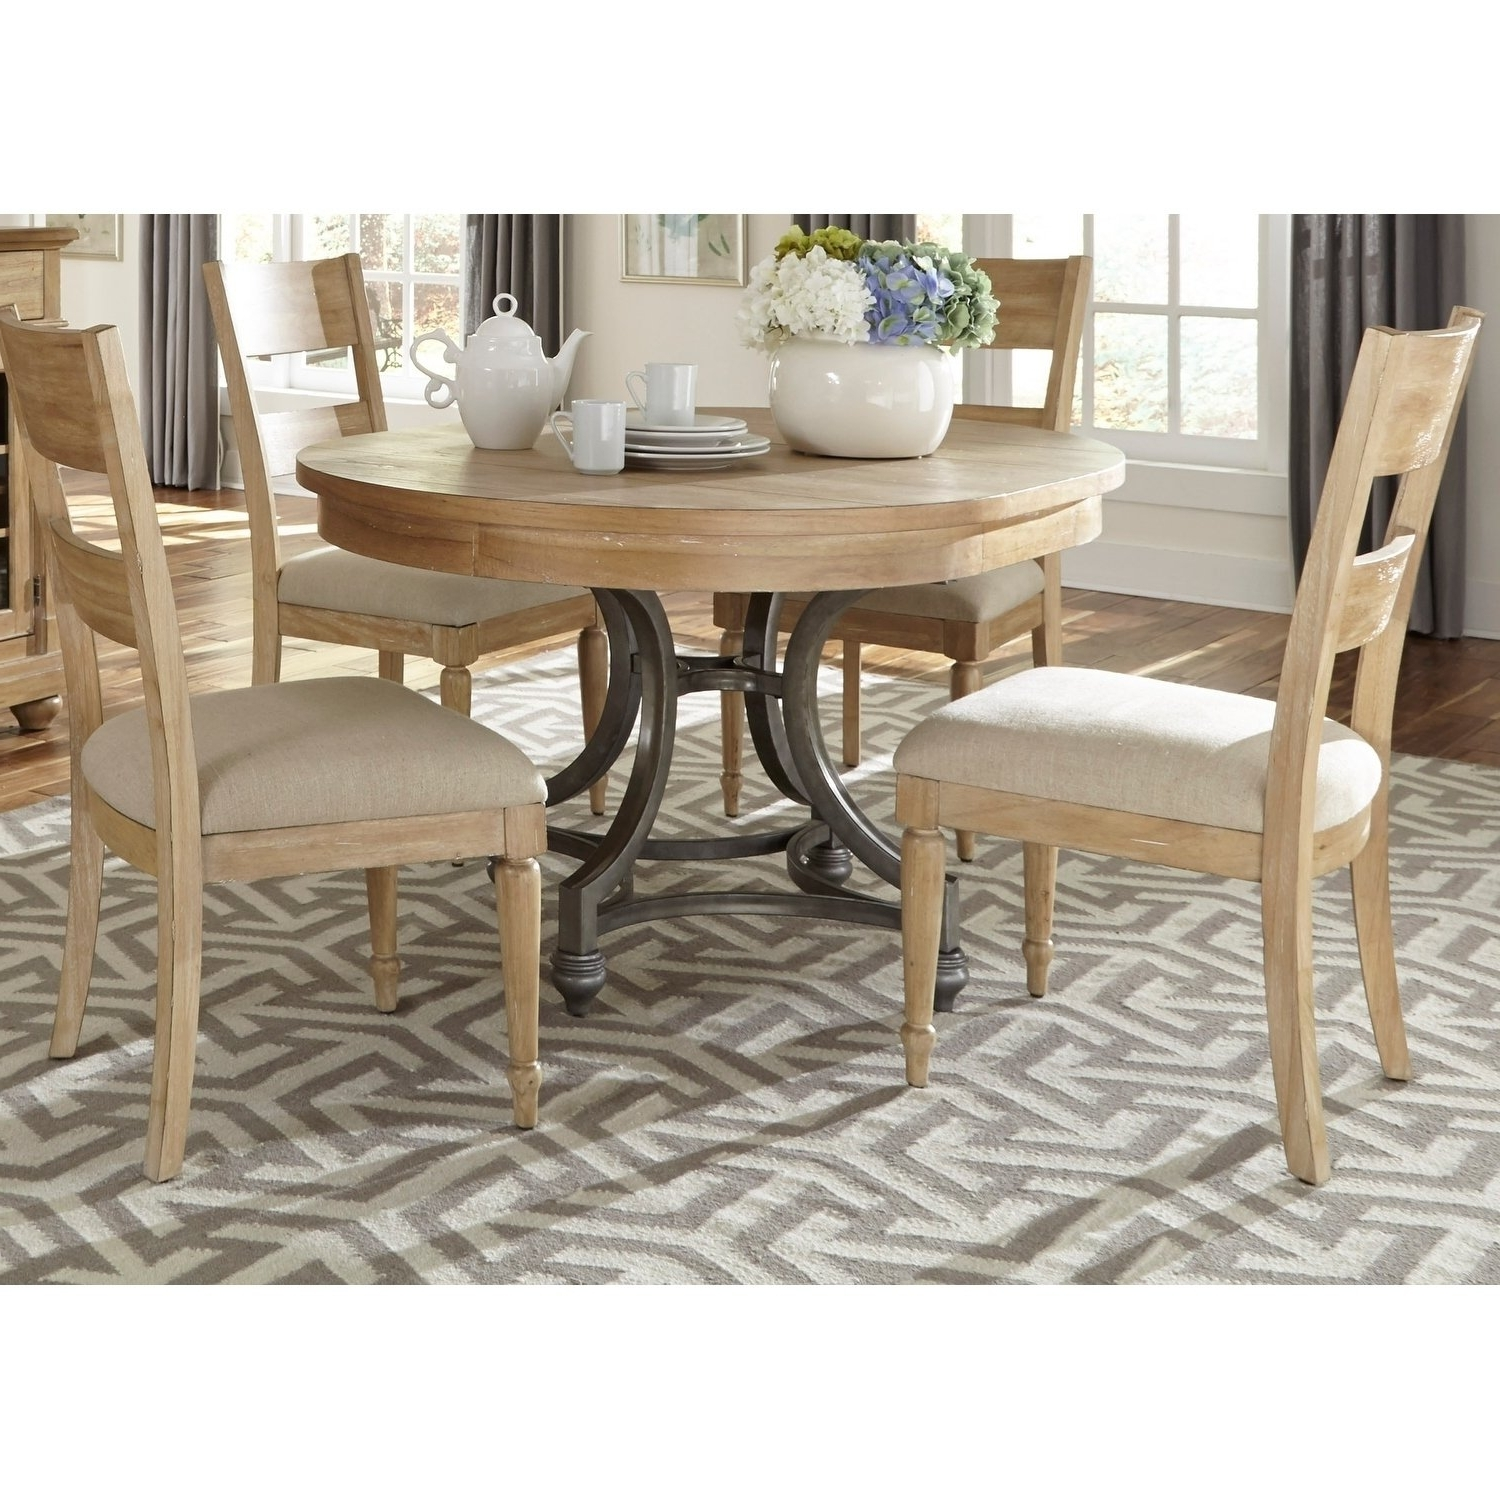 Jaxon 5 Piece Extension Counter Sets With Wood Stools Inside Popular Shop Harbor View Sand 5 Piece Round Table Set – On Sale – Free (View 23 of 25)